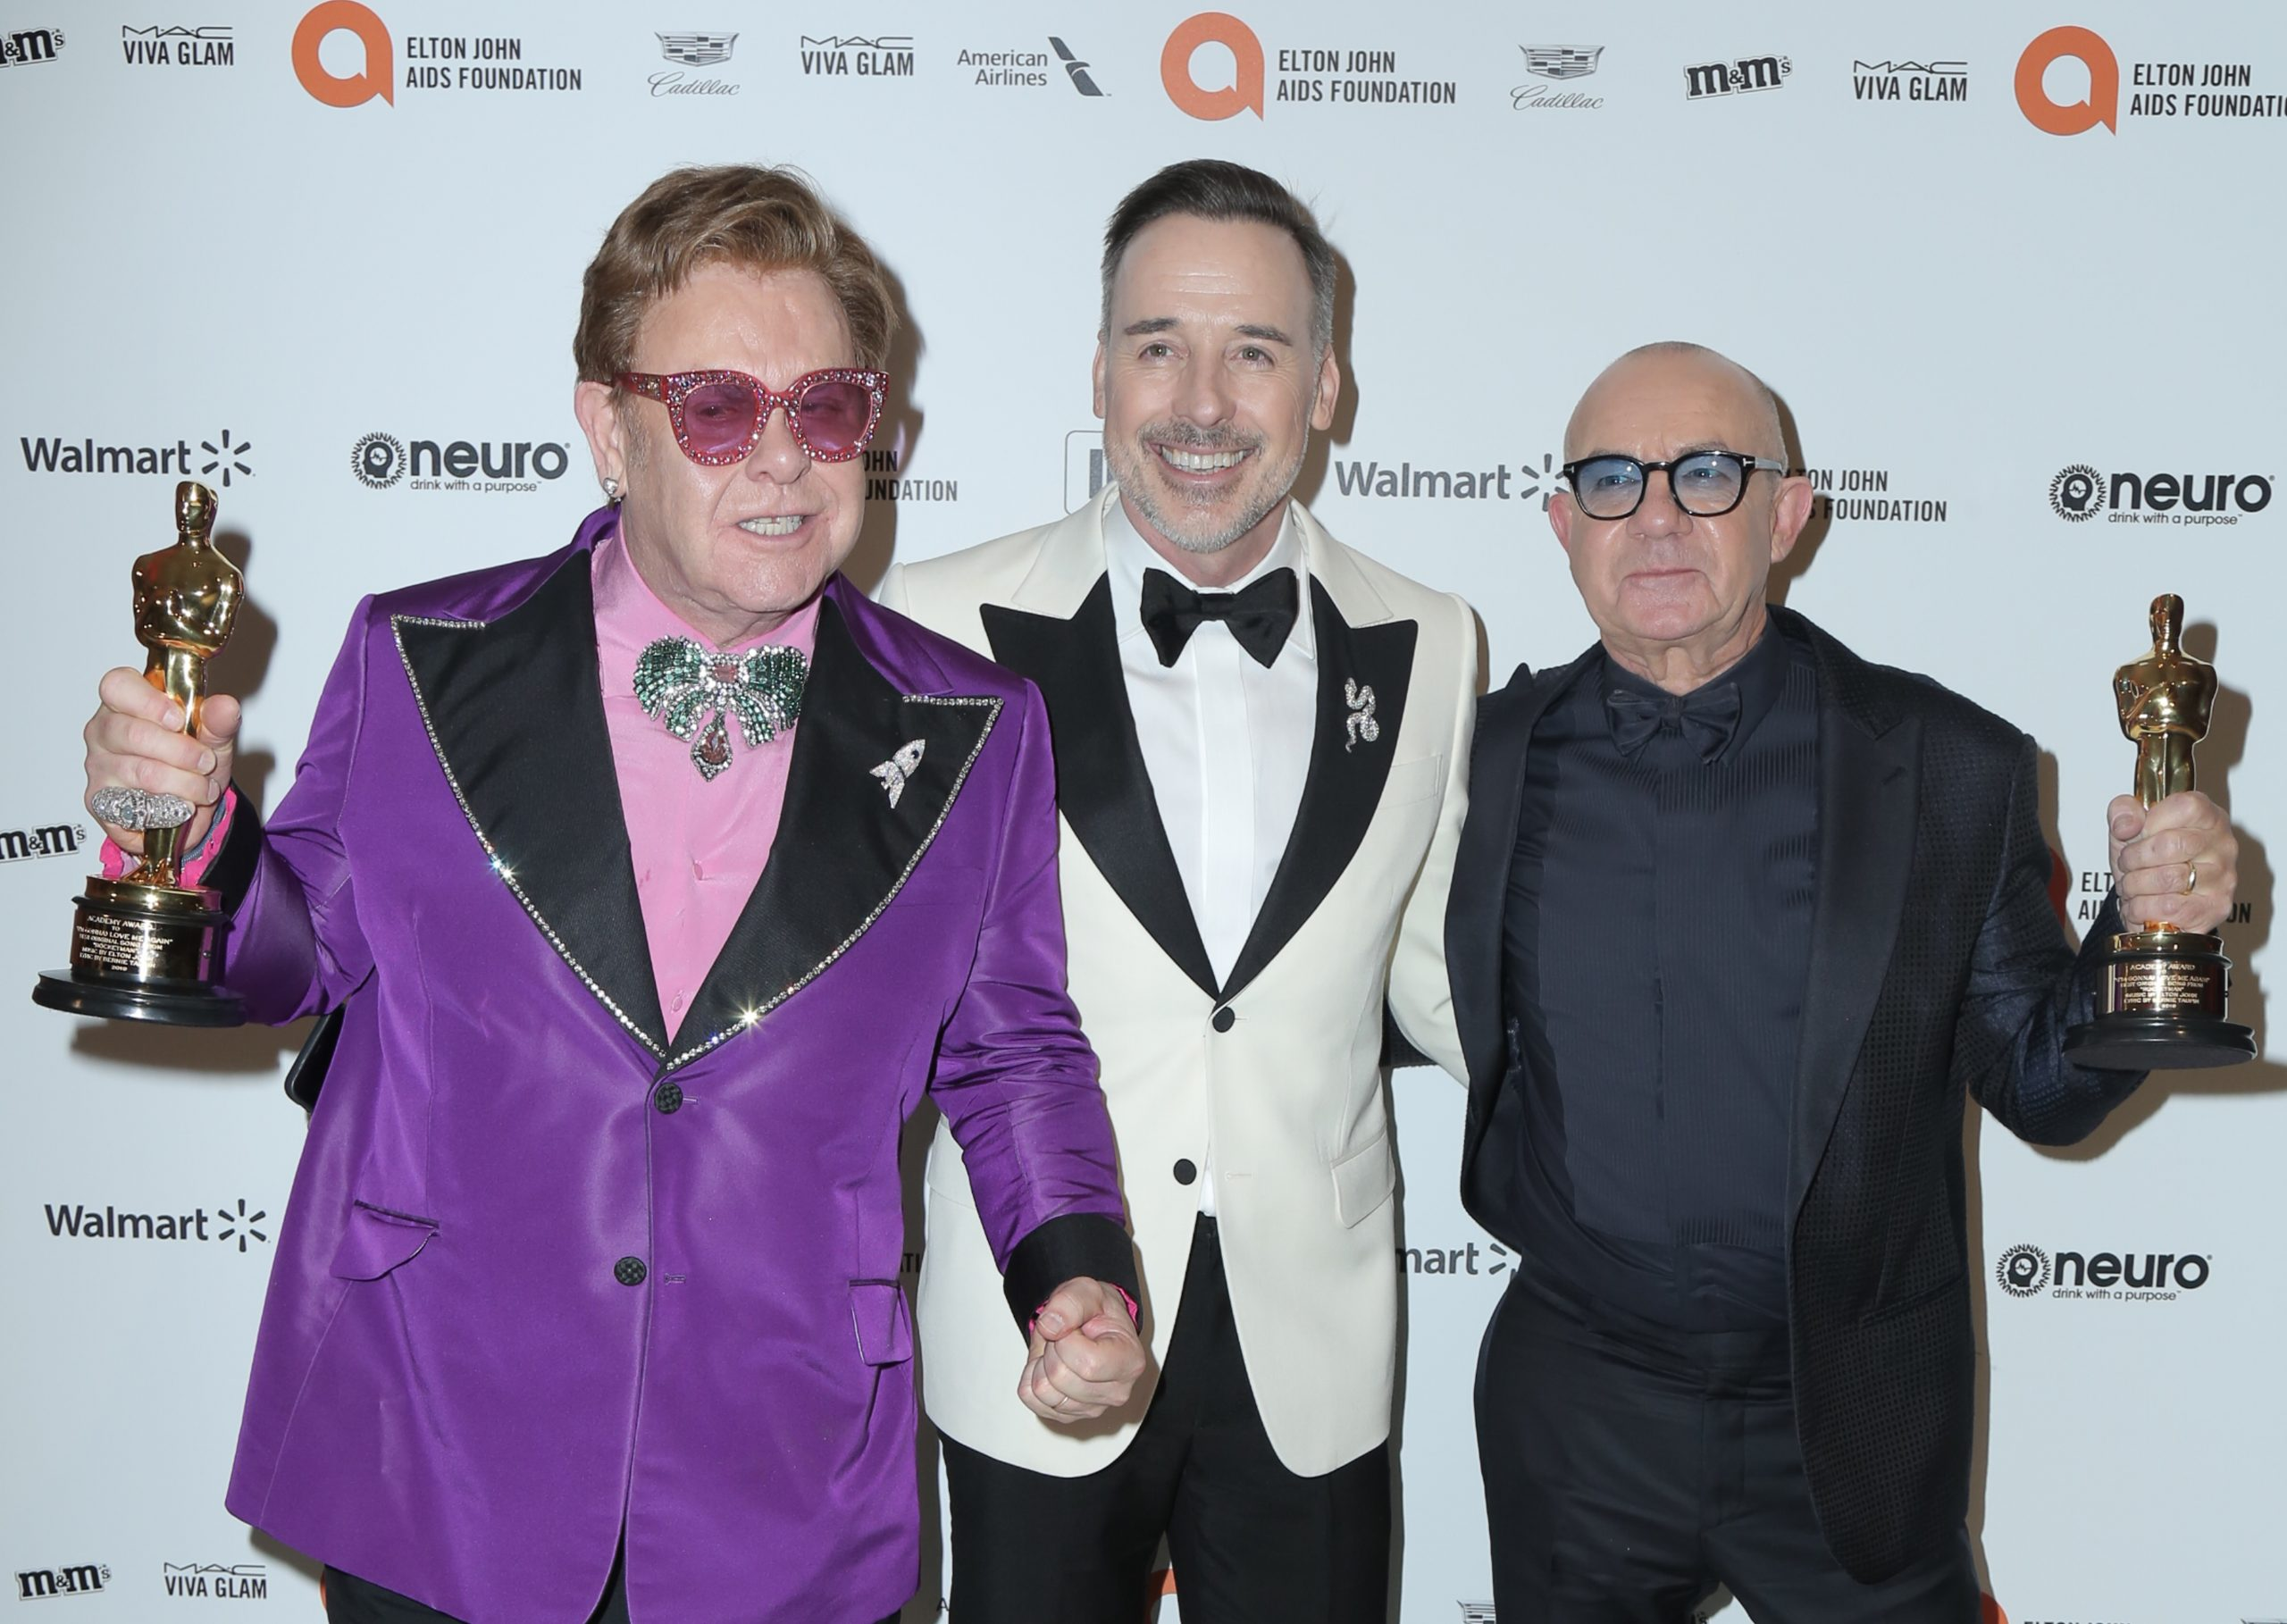 28th Annual Elton John Academy Awards Viewing Party held at West Hollywood Park. Photo Credit: PMA/AdMedia Pictured: Elton John,David Furnish,Bernie Taupin Ref: SPL5147565 090220 NON-EXCLUSIVE Picture by: PMA/AdMedia / SplashNews.com Splash News and Pictures Los Angeles: 310-821-2666 New York: 212-619-2666 London: +44 (0)20 7644 7656 Berlin: +49 175 3764 166 photodesk@splashnews.com World Rights